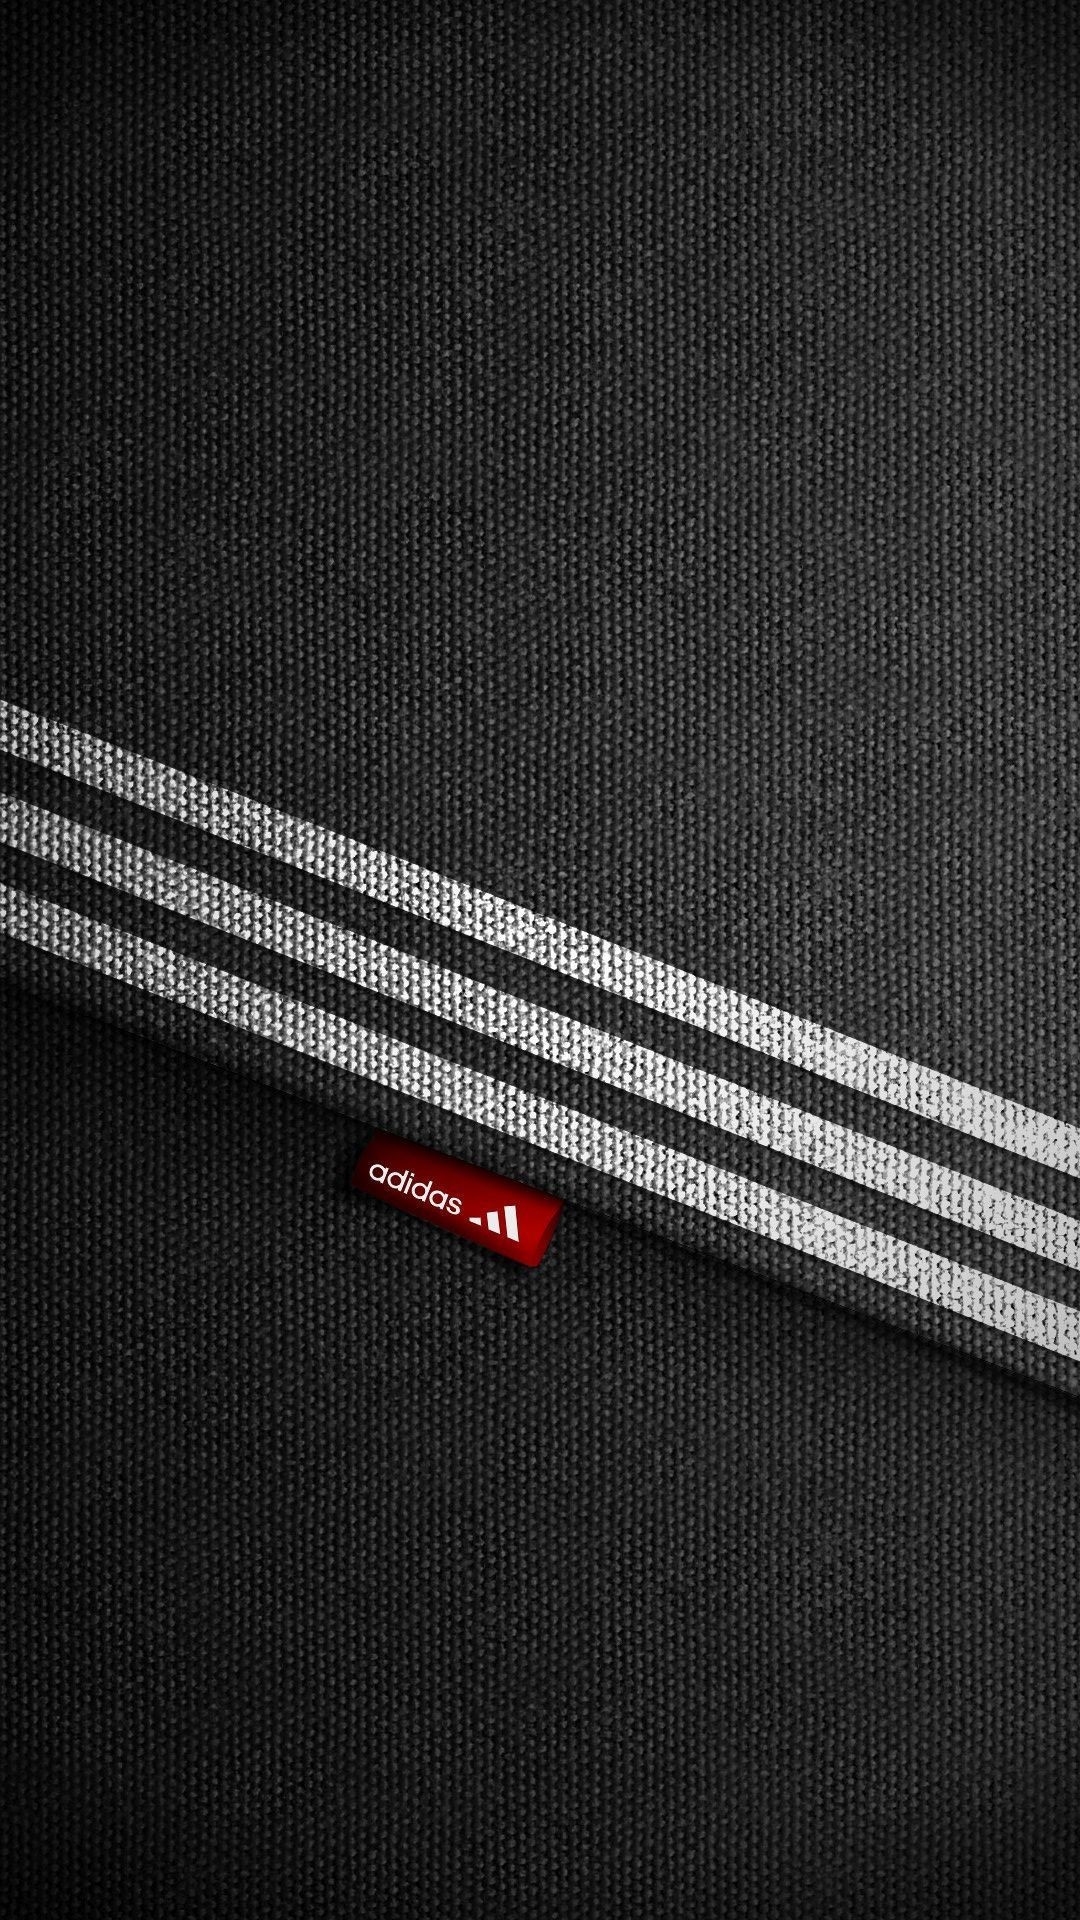 adidas iphone 6 plus wallpapers Items – Share adidas iphone 6 plus  wallpapers Items – LoveItSoMuch